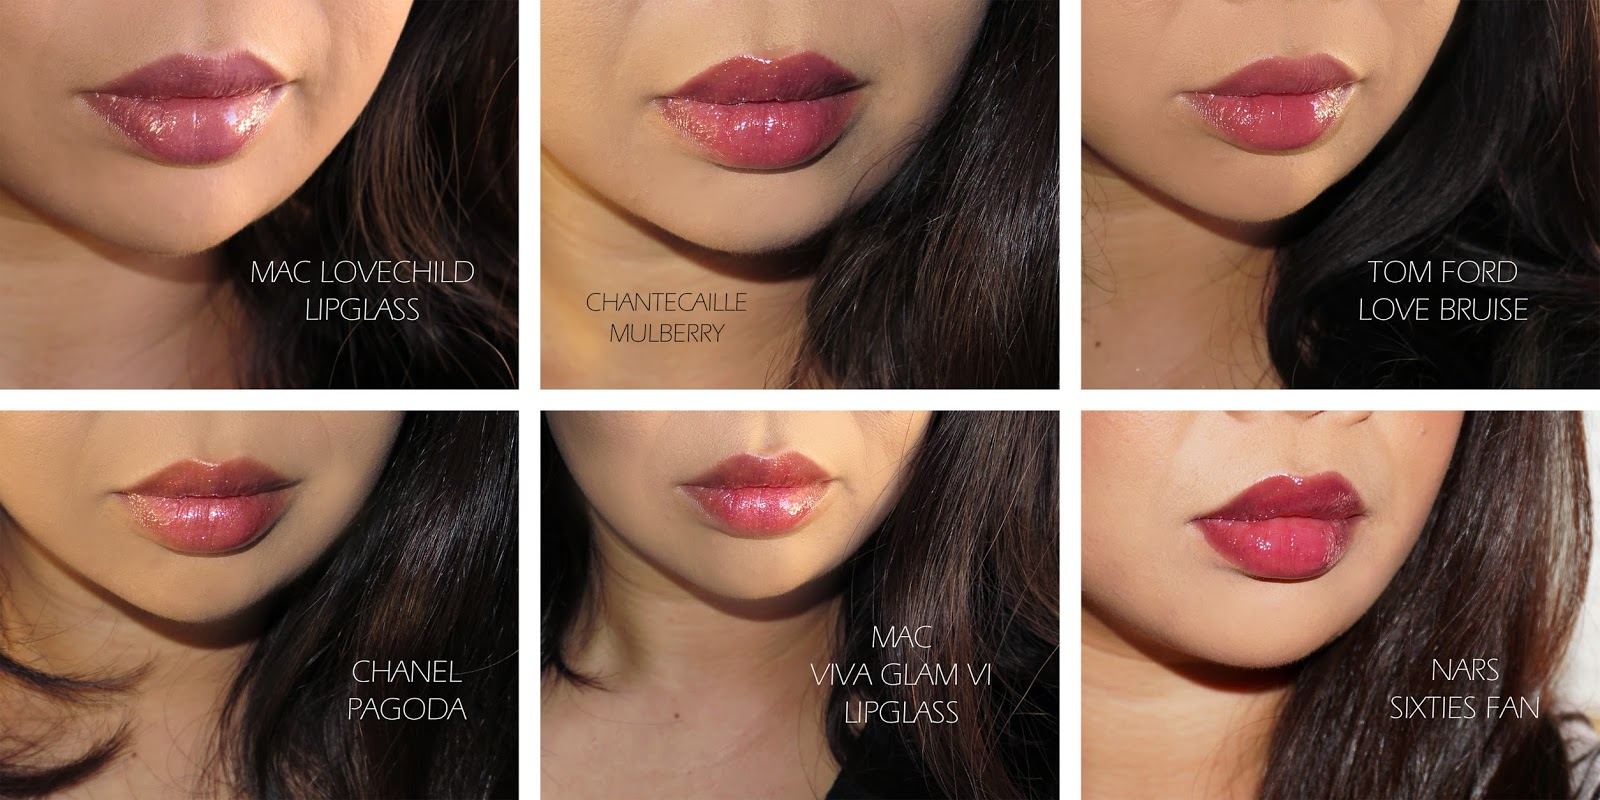 My Top Picks For Lipsticks Include